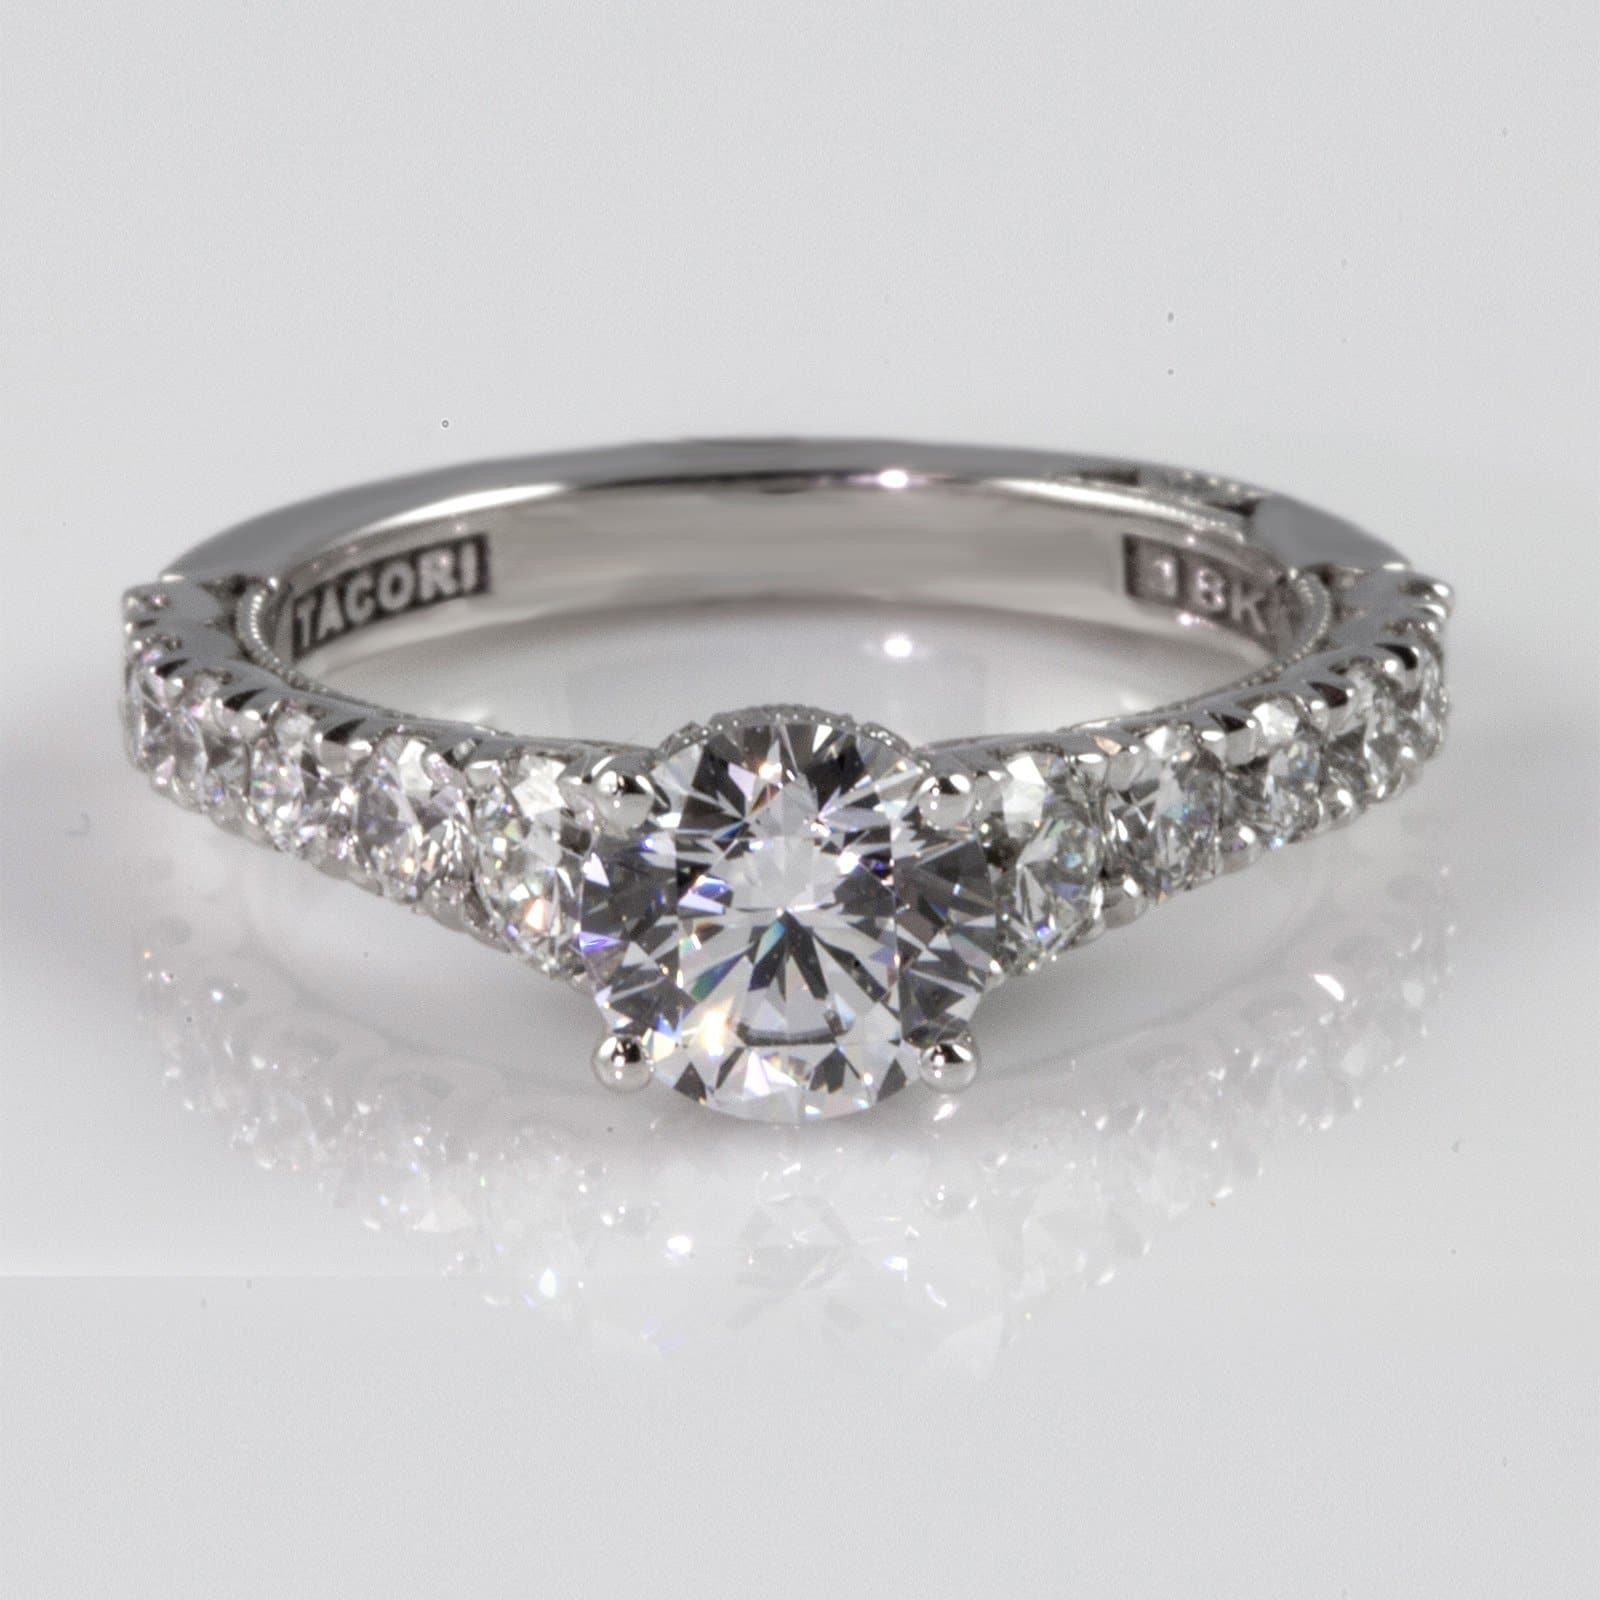 18K White Gold 4-Prong; Graduating Round Diamond Shoulder 1/2 Around 1.05ct Diamond Ring